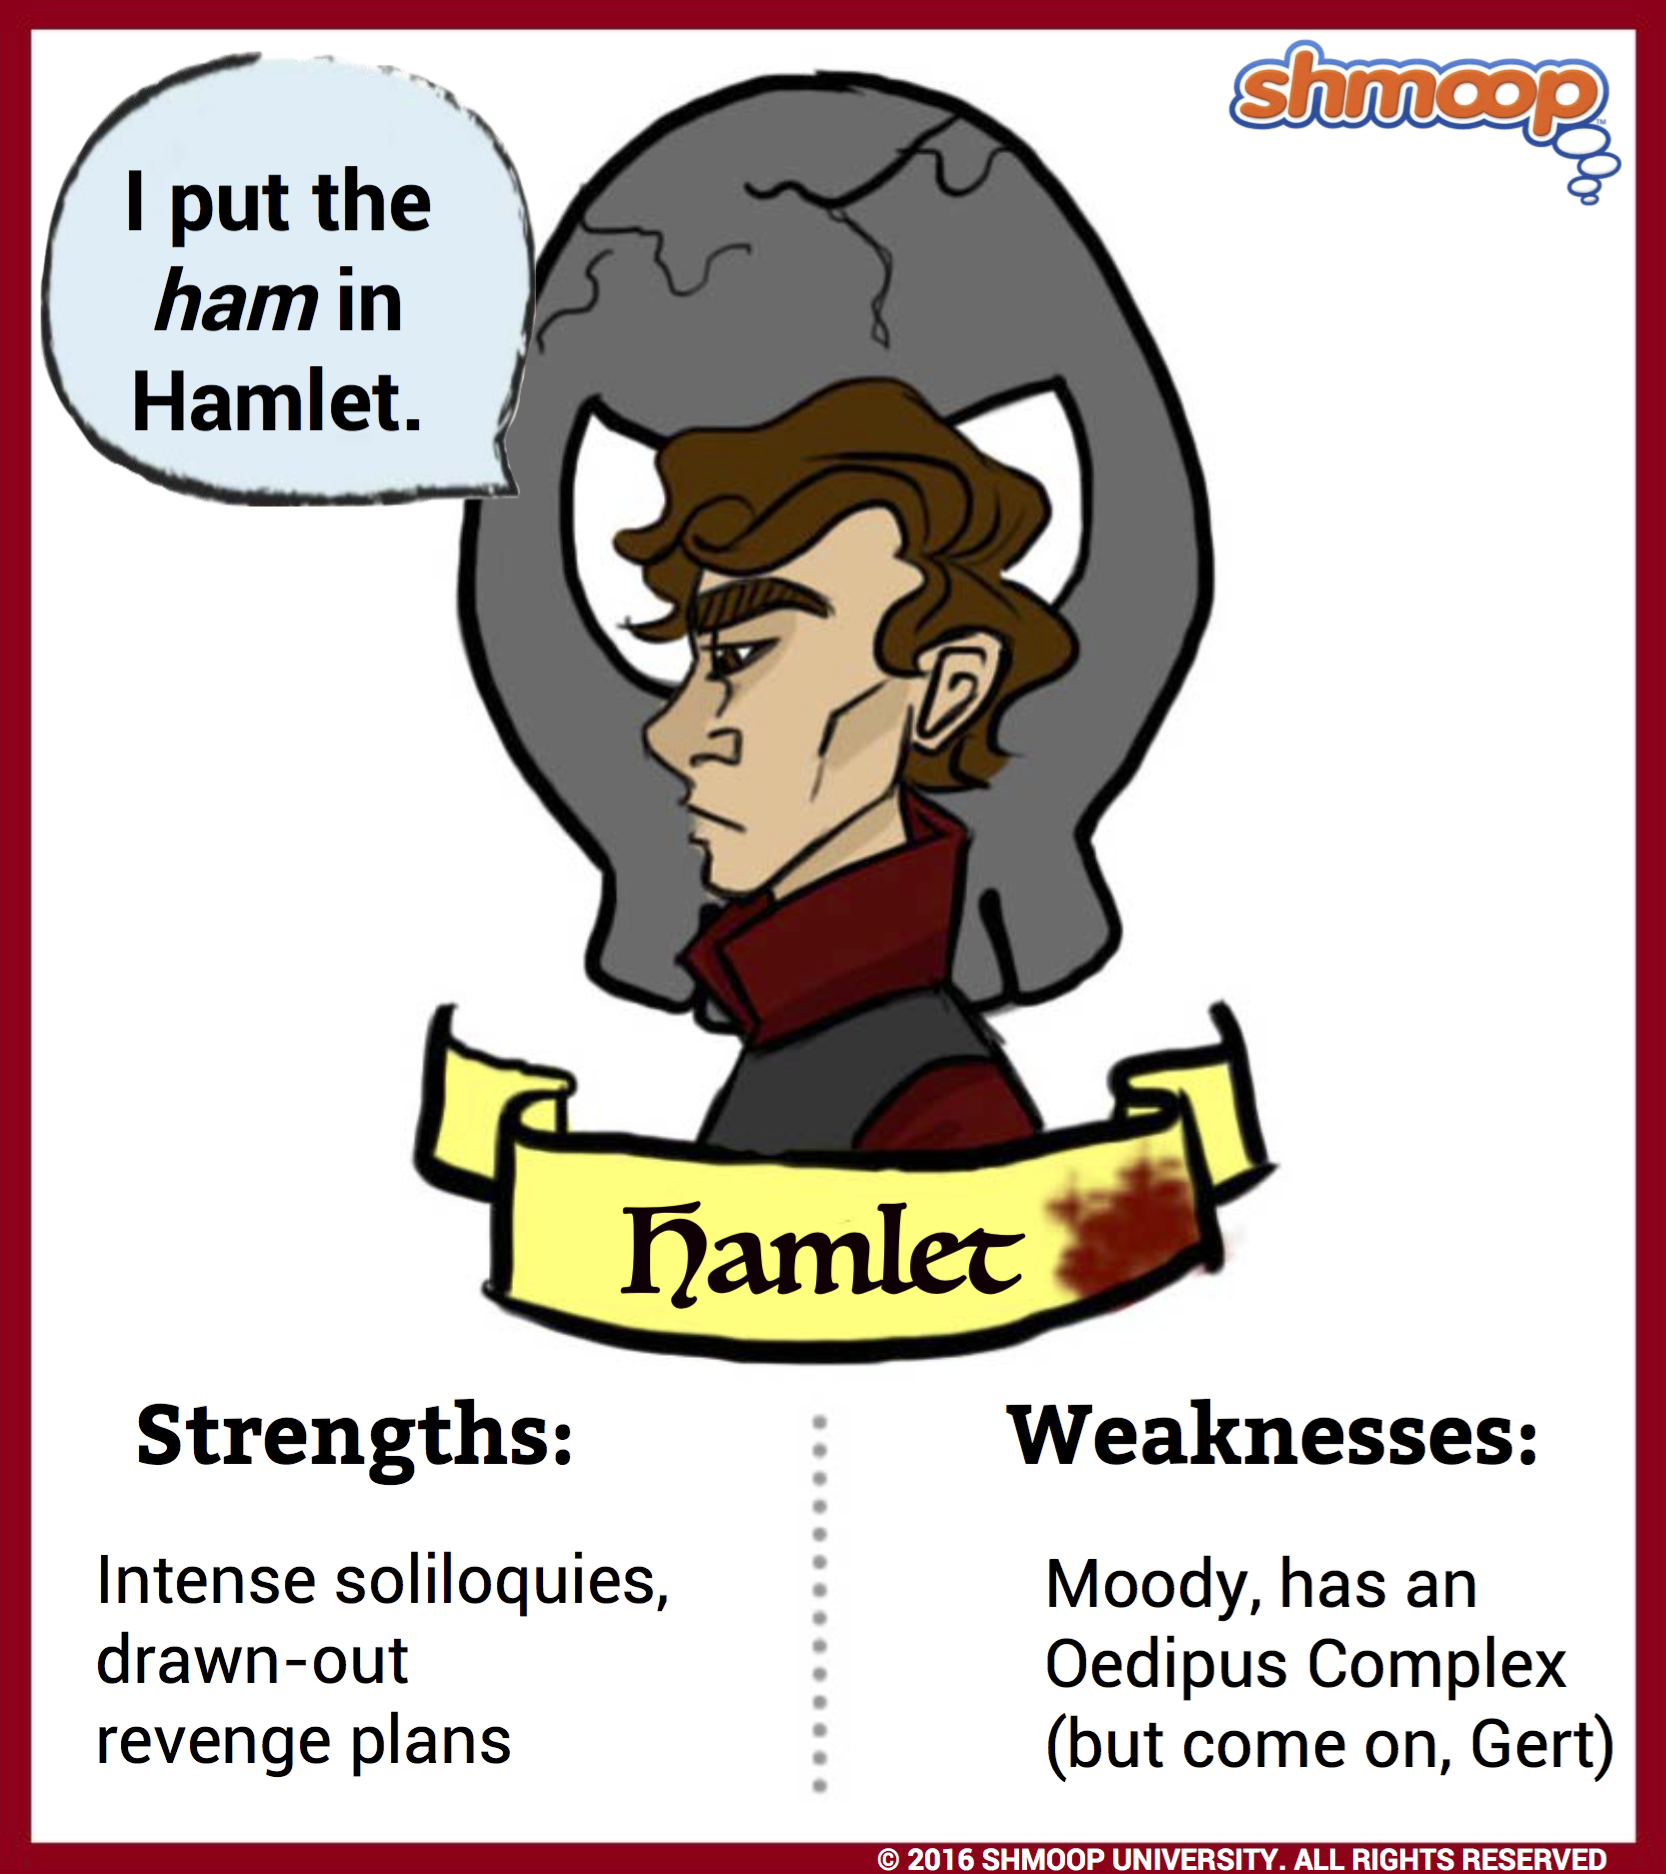 "character analysis of claudius in hamlet a play by william shakespeare Hamlet is the main character and protagonist in the play ""hamlet"" by william shakespeare he is the son of queen gertrude and king hamlet, who was murdered by his uncle claudius hamlet is a very unique individual and handles many situations in unusual ways."